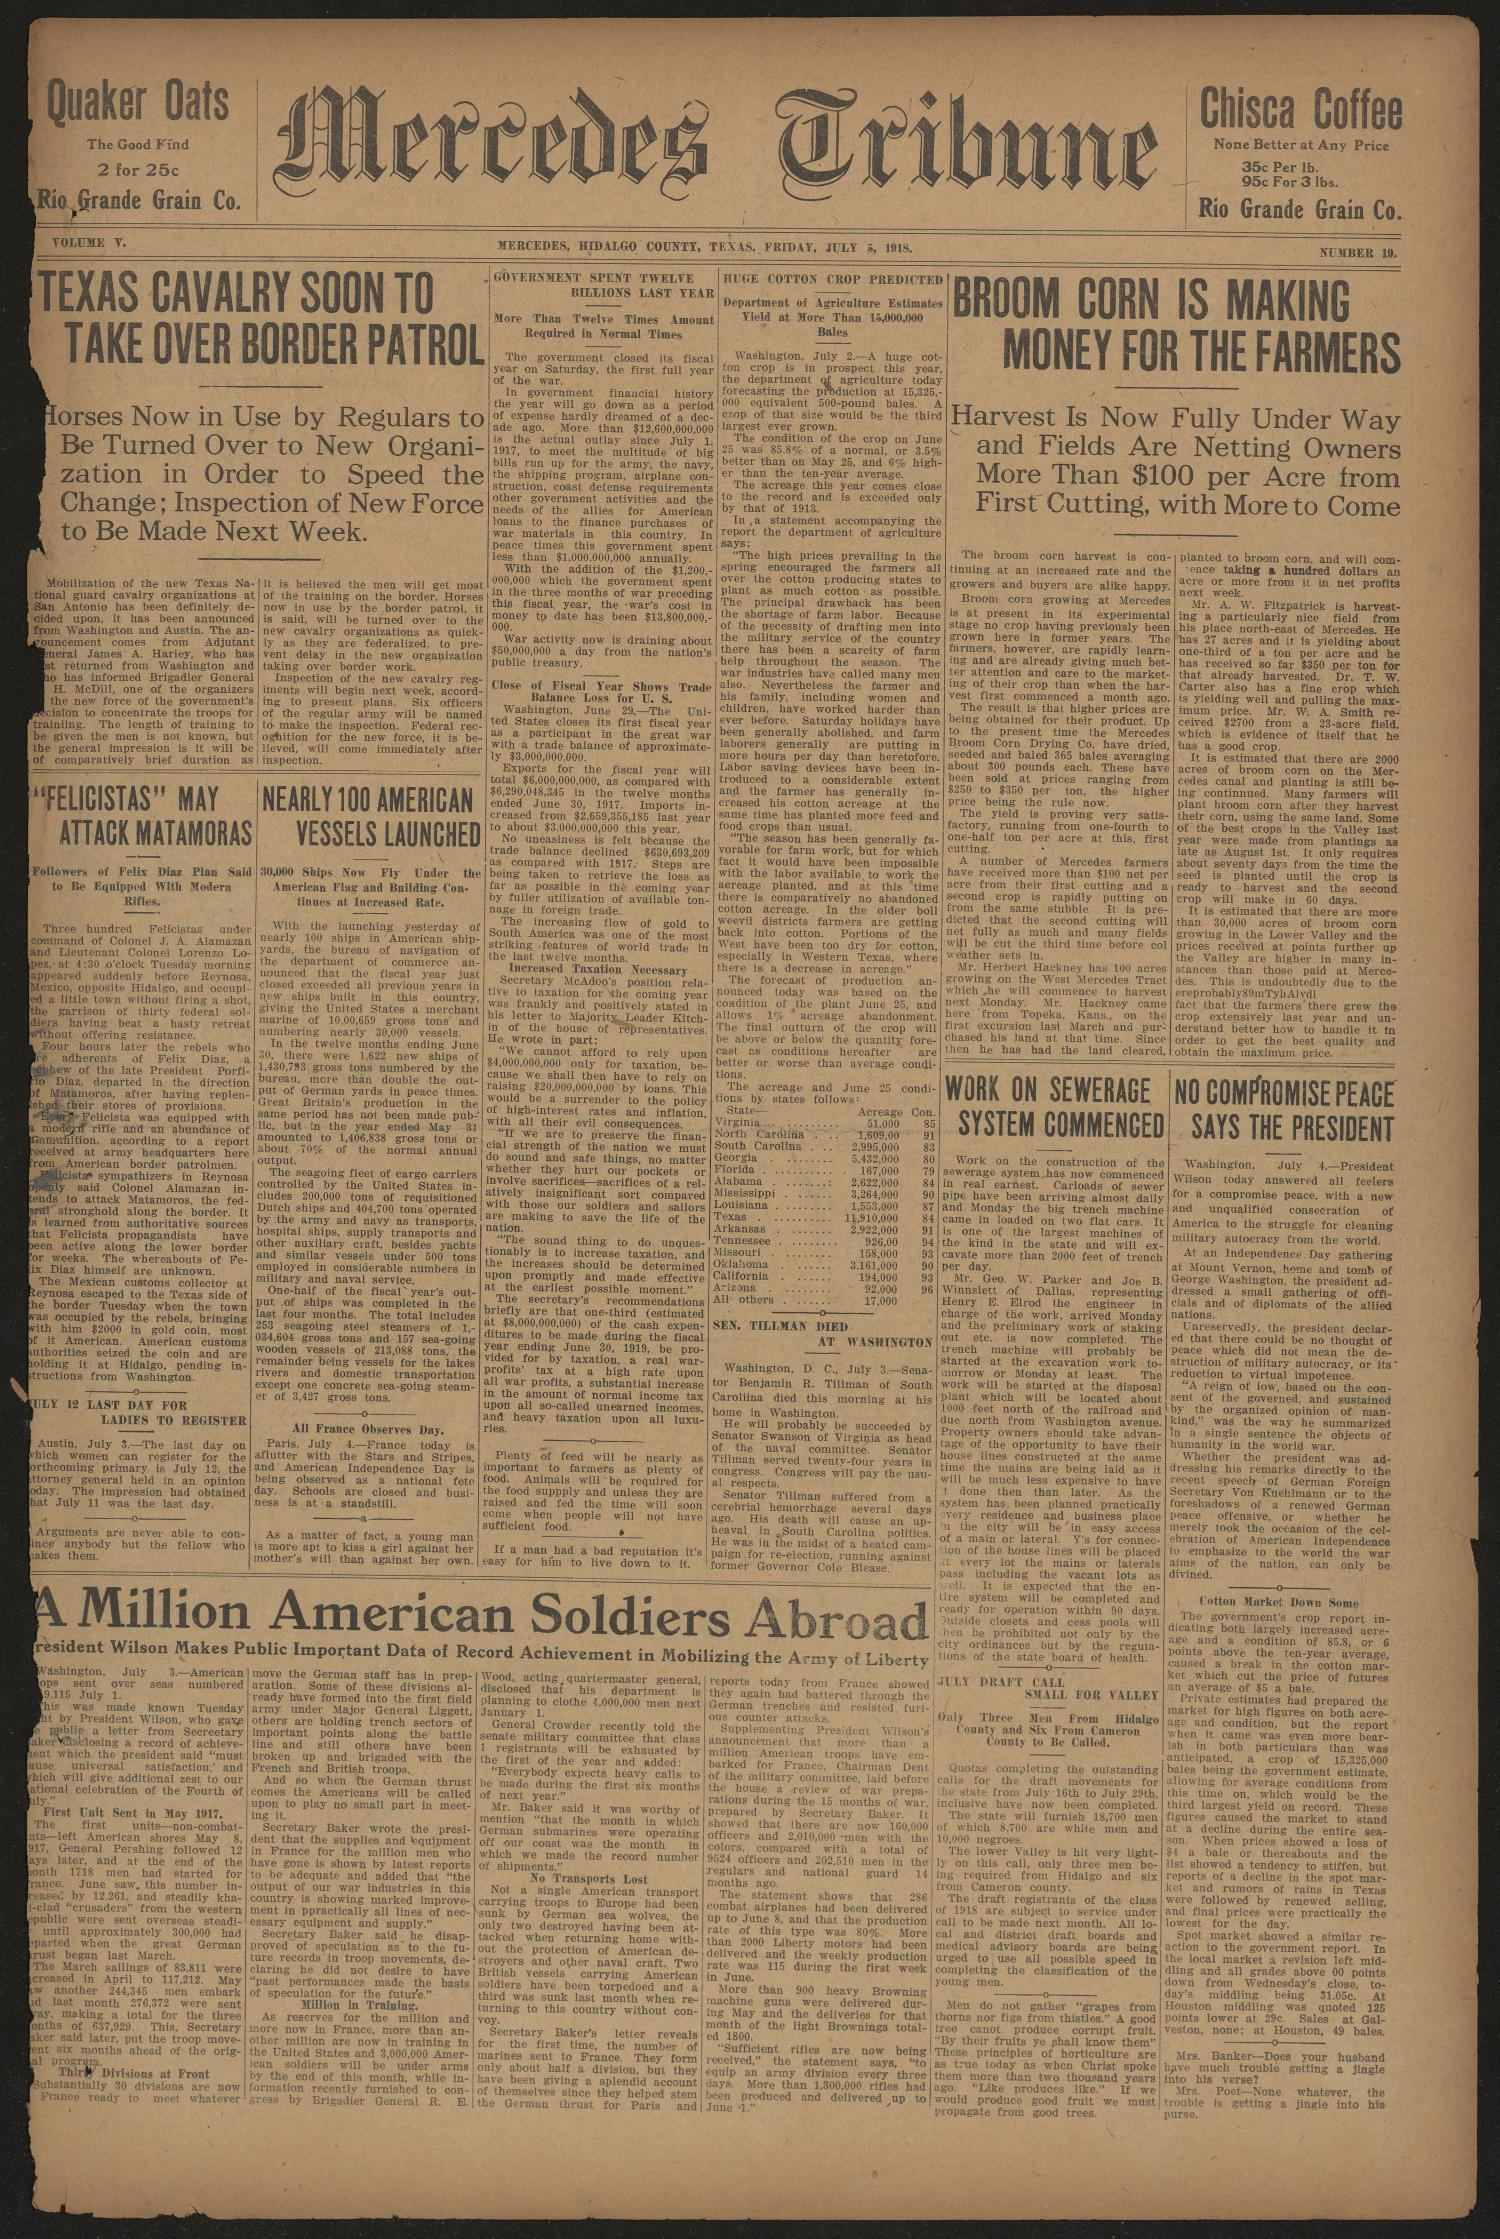 Mercedes Tribune (Mercedes, Tex.), Vol. 5, No. 19, Ed. 1 Friday, July 5, 1918                                                                                                      [Sequence #]: 1 of 10